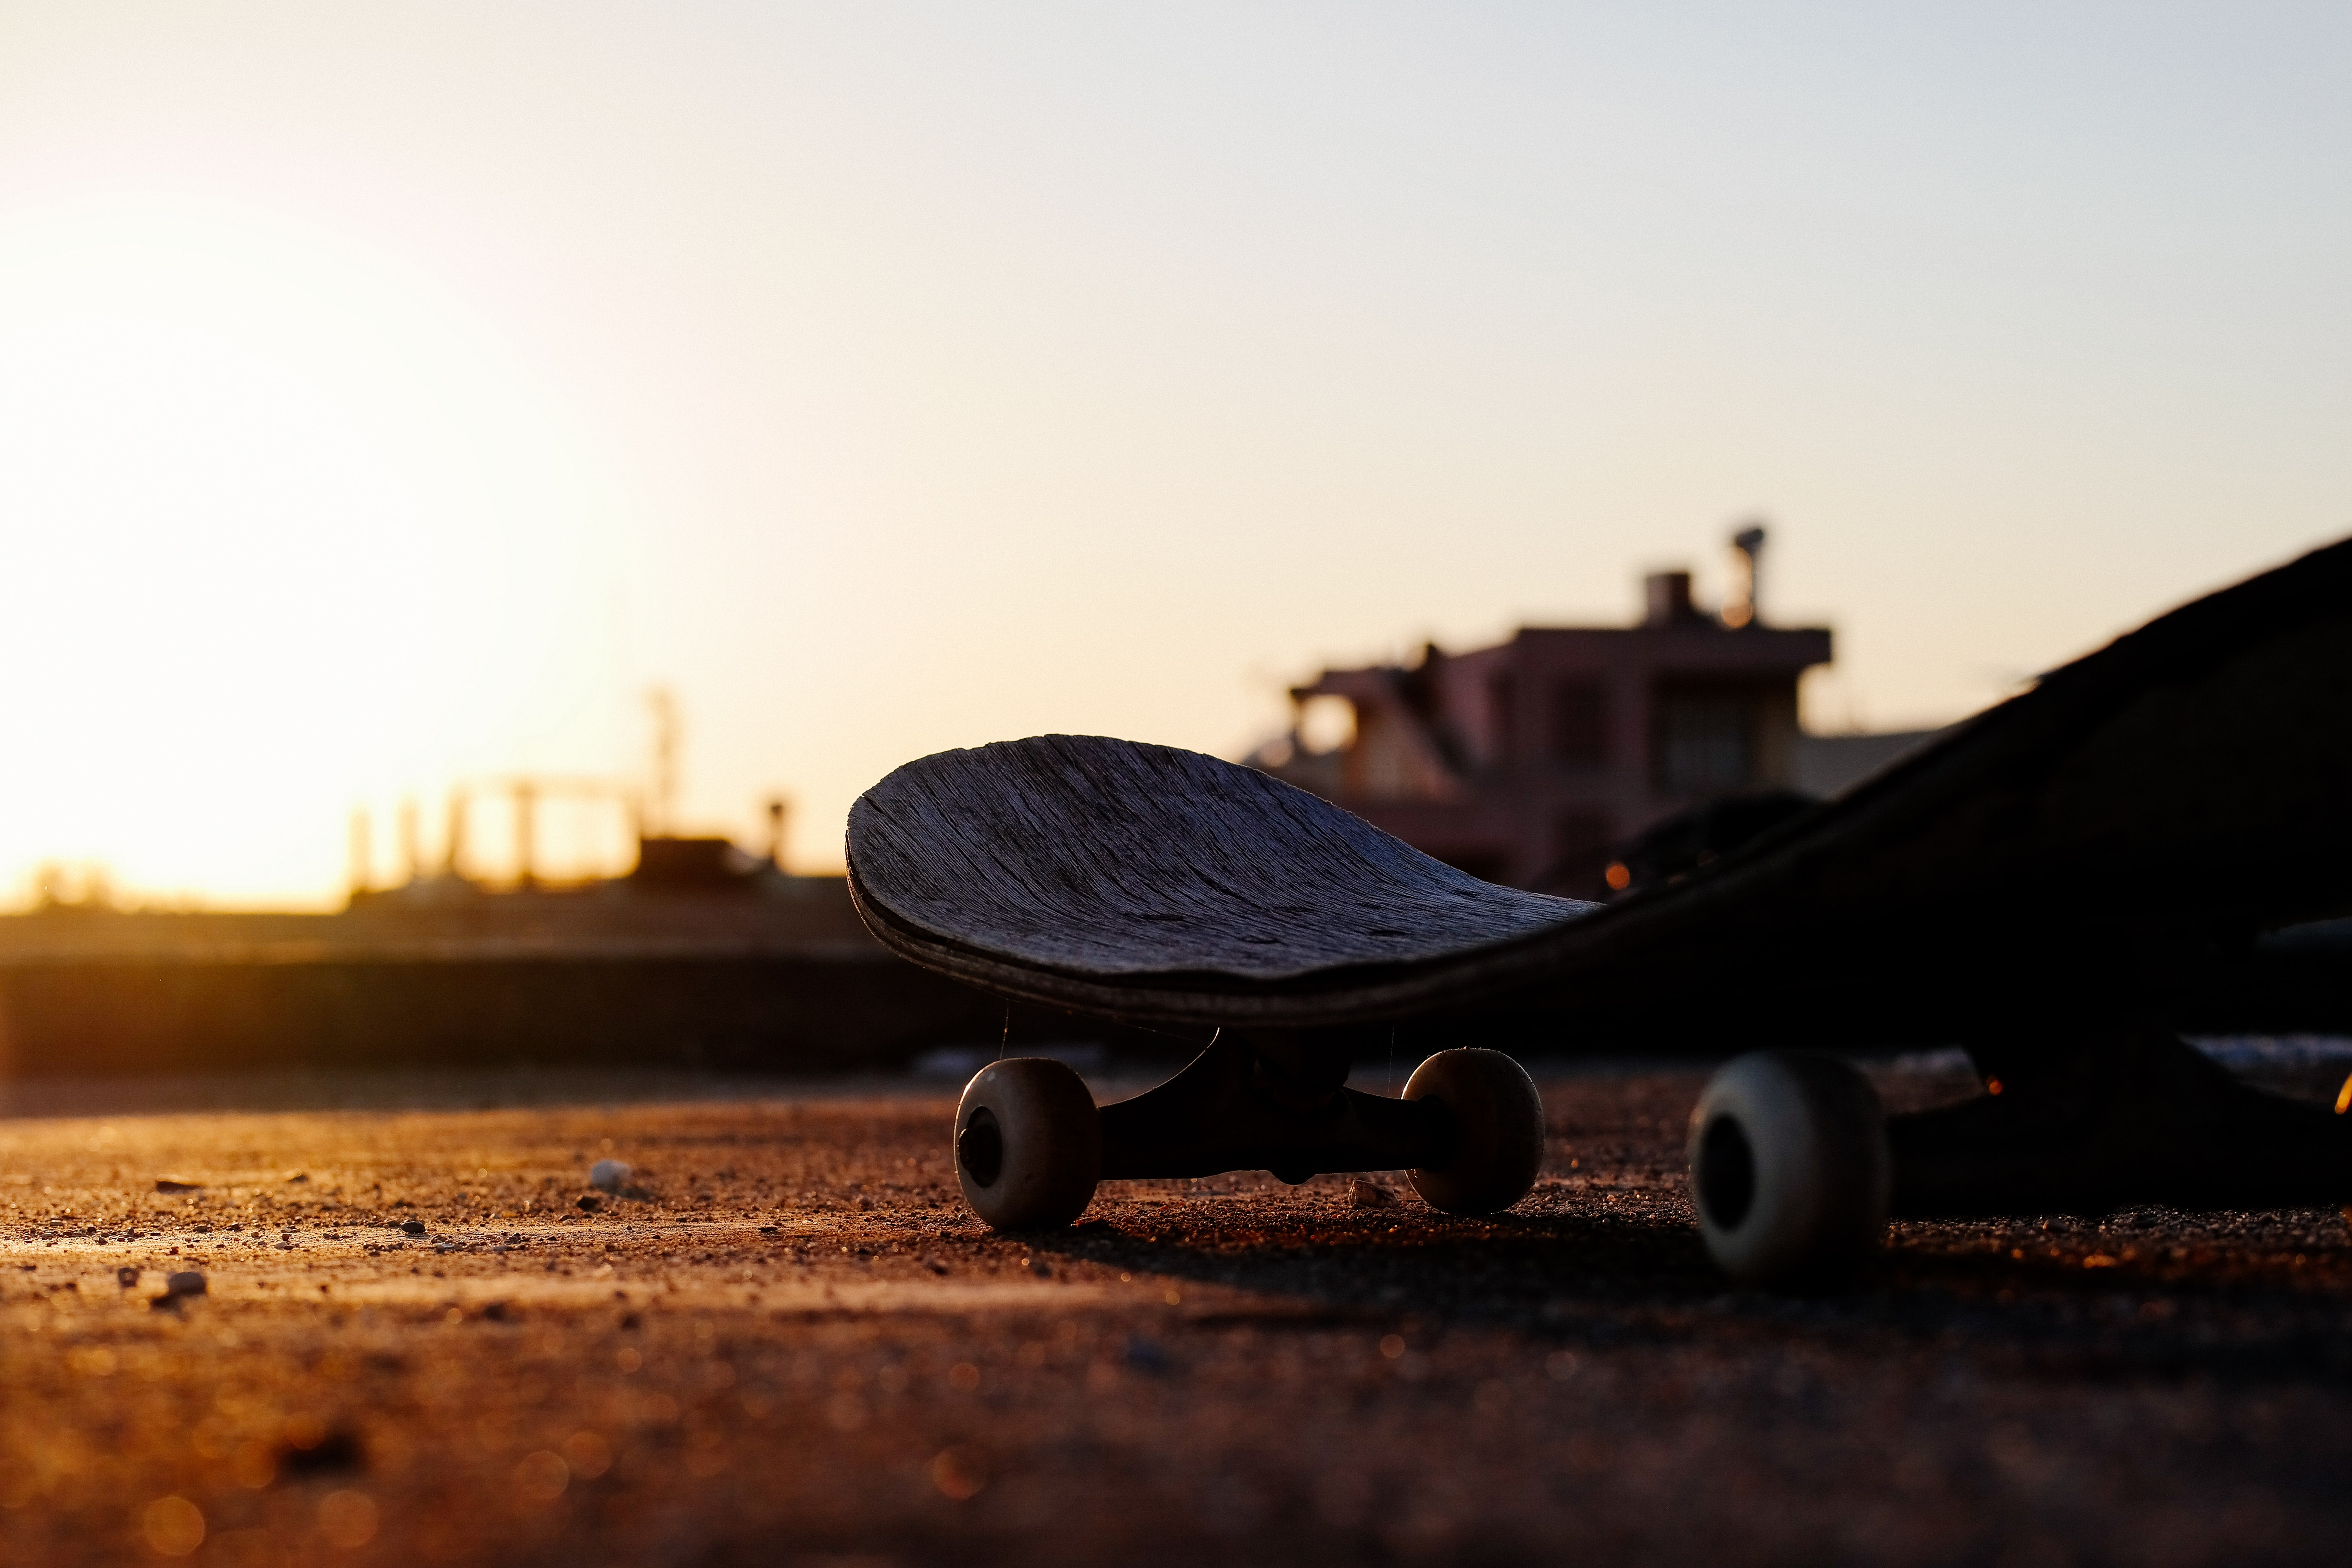 Skateboard macro shot with obscure horizon at sunrise-or-sunset in Adana